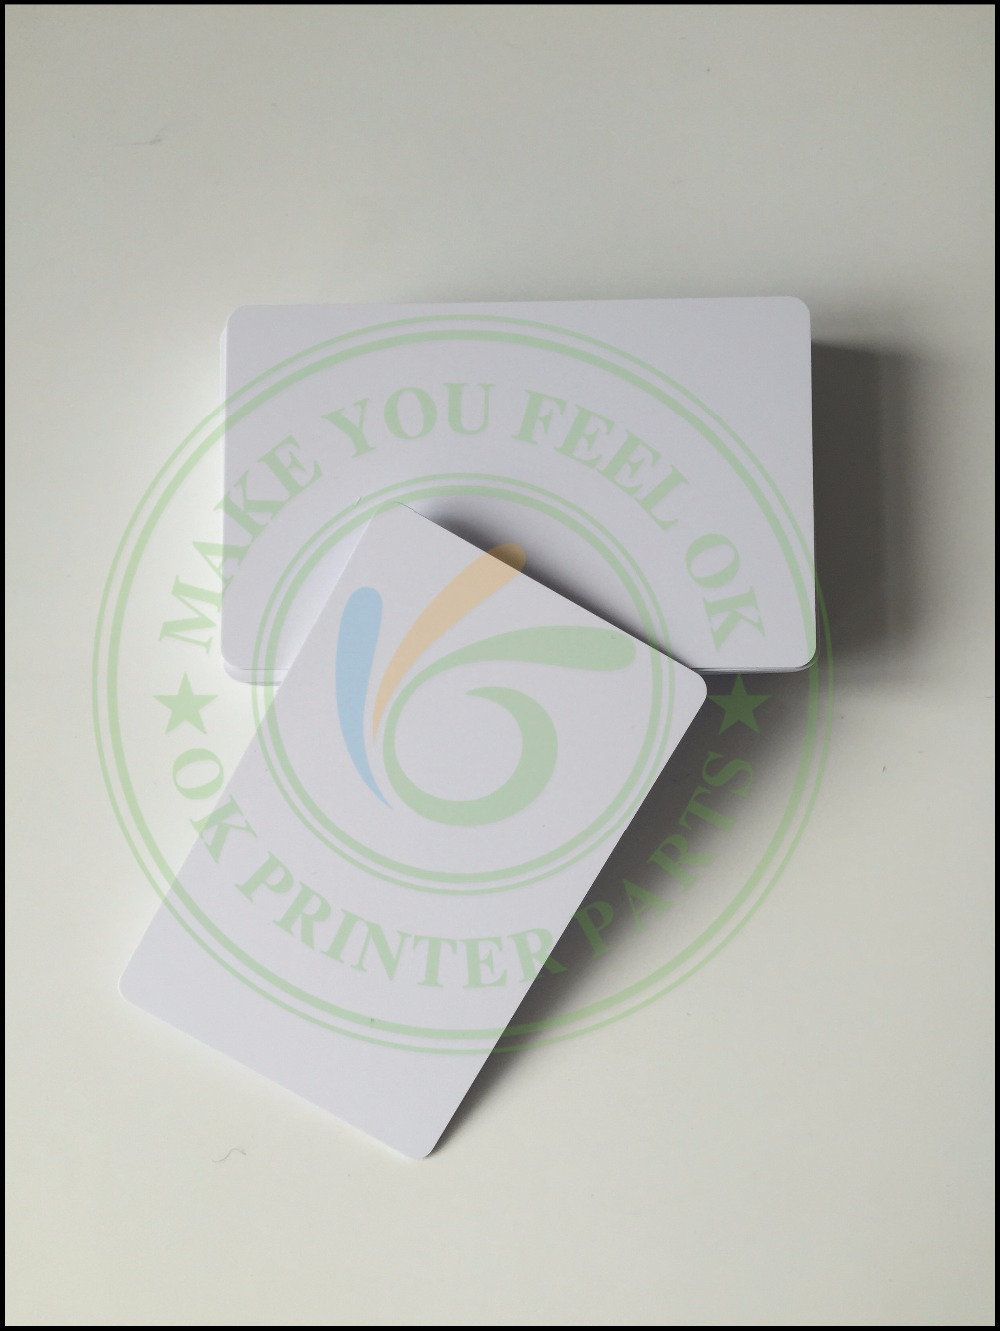 100 glossy White Blank inkjet printable PVC Card Waterproof plastic ID Card business card no chip for Epson for Canon printer directly printing inkjet blank pvc card for epson printer r265 r310 r320 r350 r390 double side printable pvc id cards 230pcs box